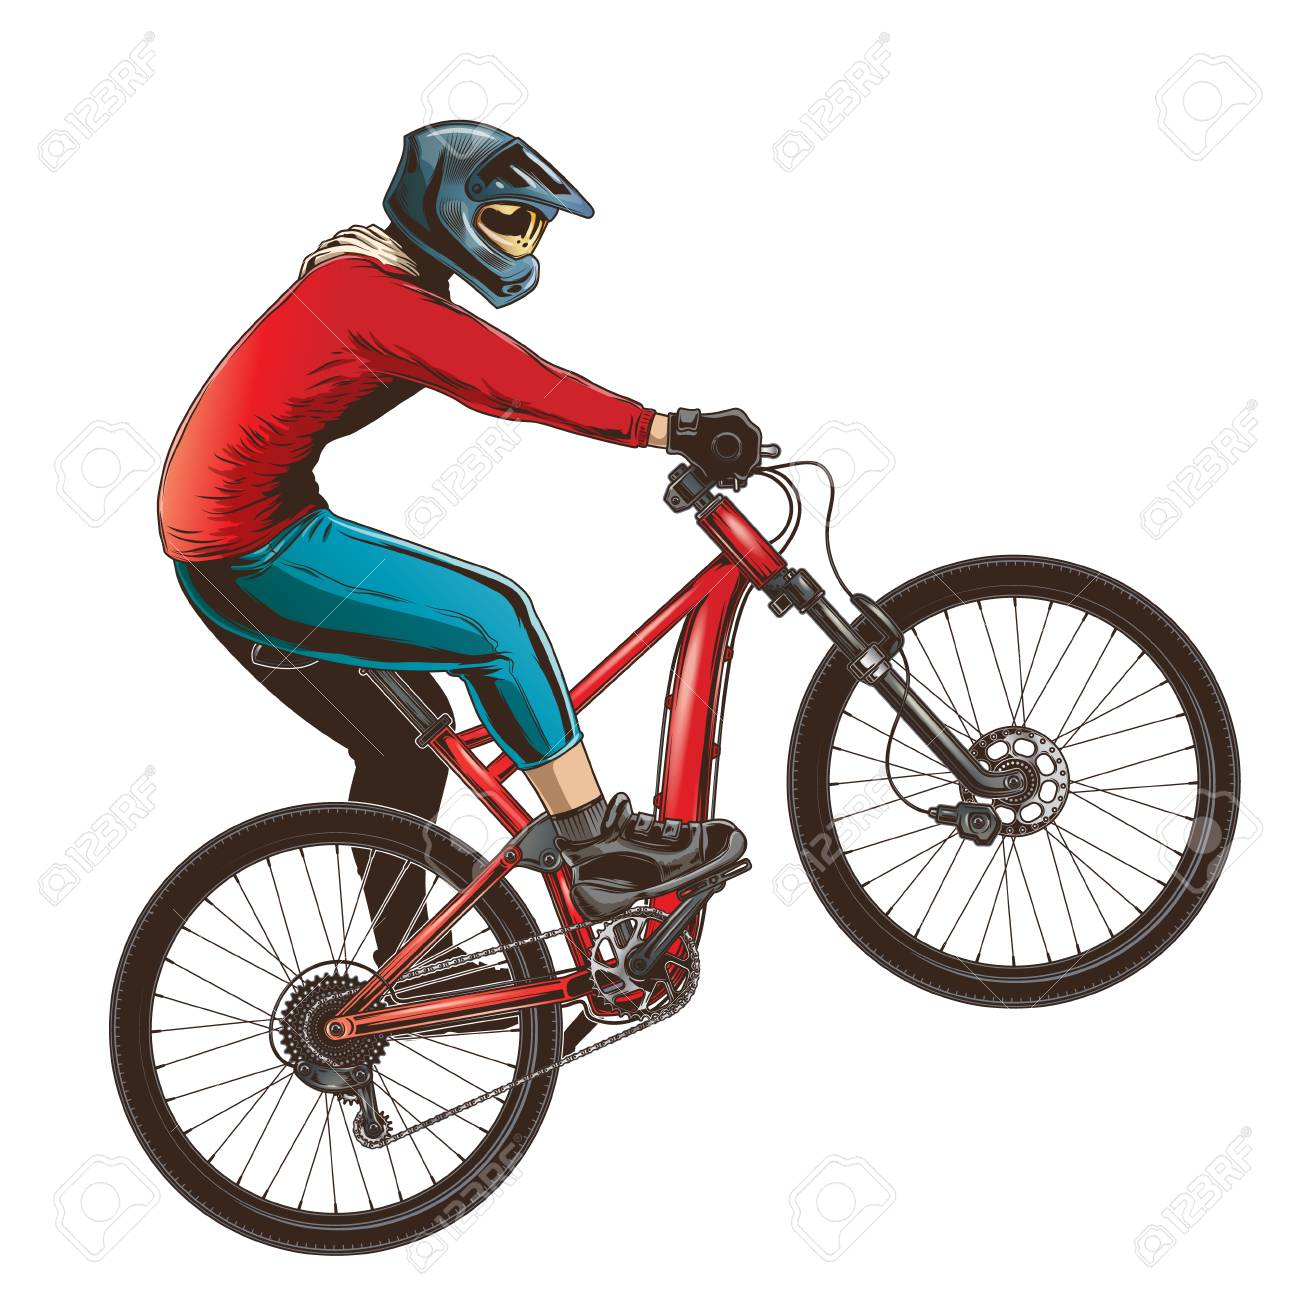 Ride on a sports bicycle, BMX cyclist performing a trick. Mountain bike competition, color vector illustration isolated on a white background. - 91102473